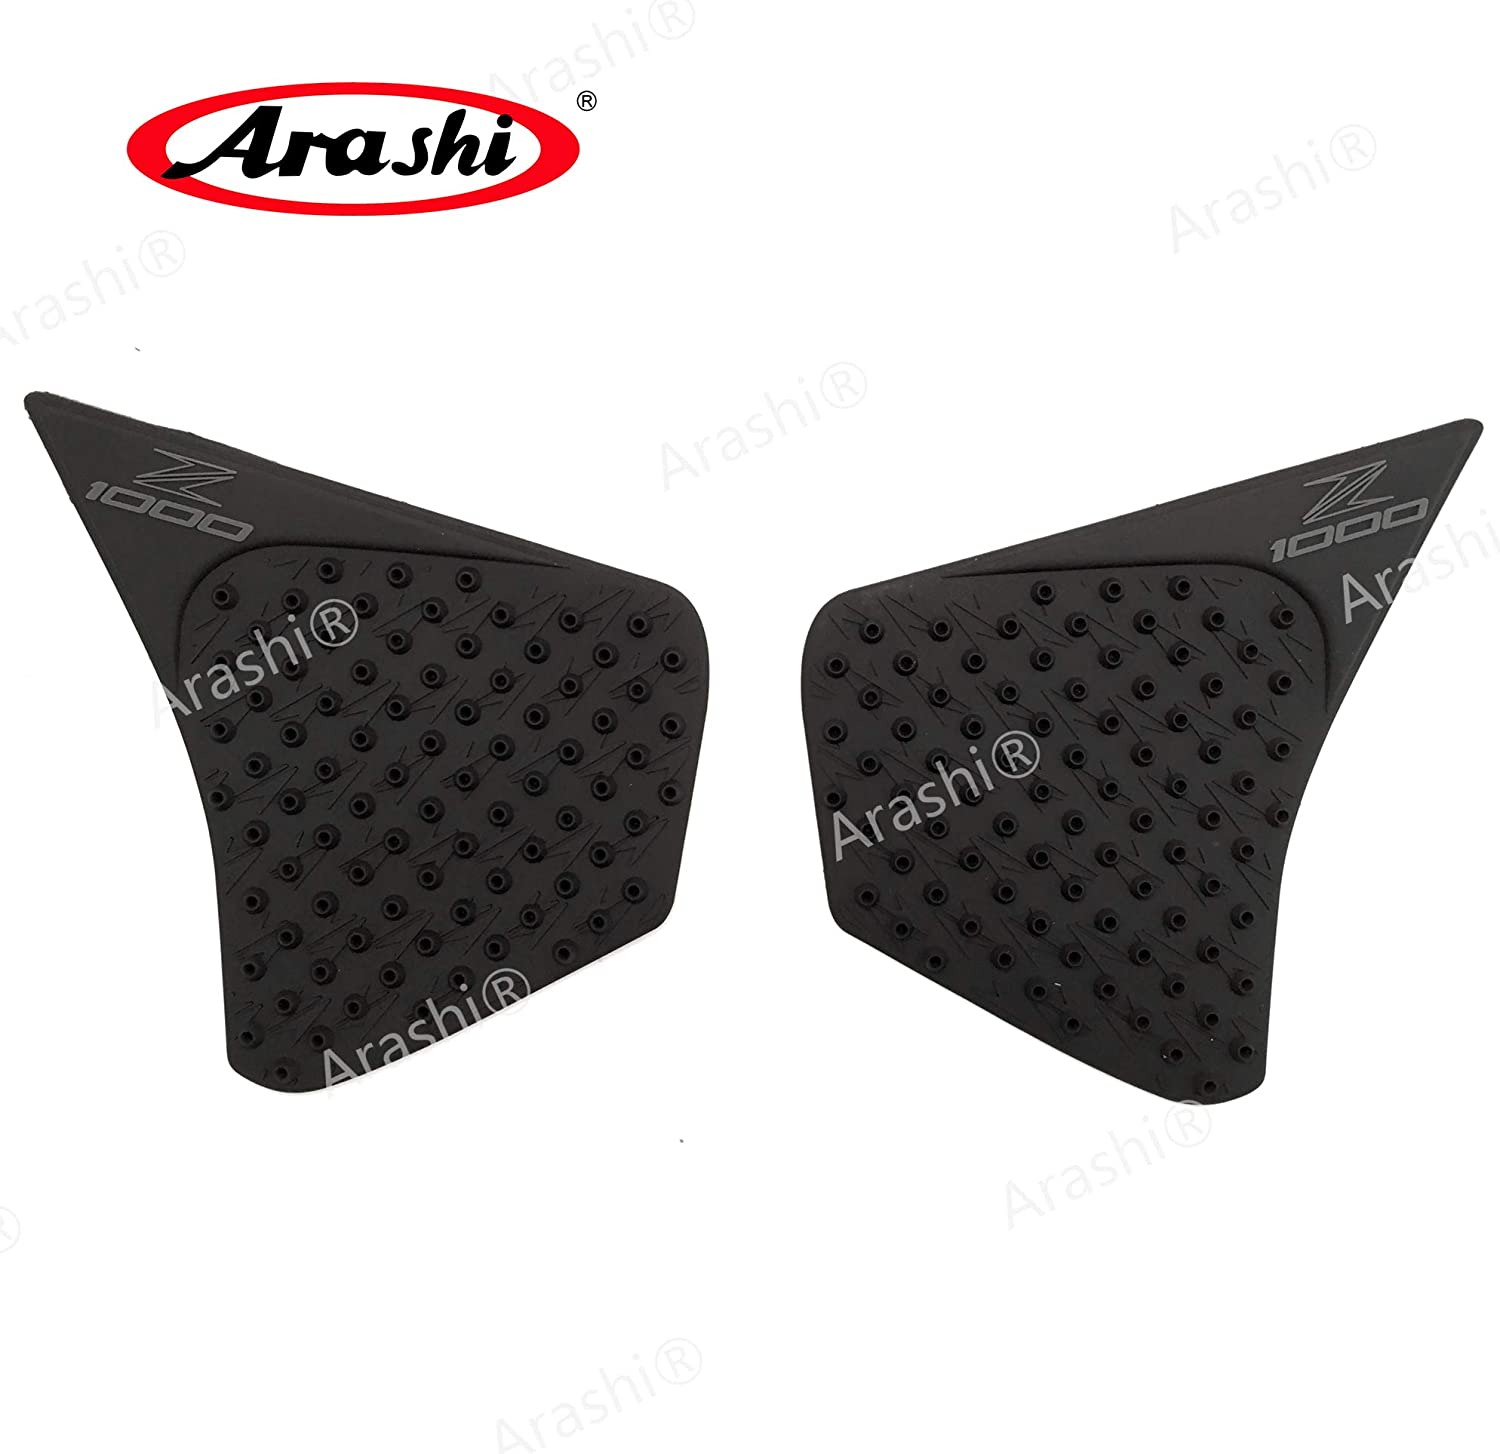 Arashi Anti slip Gas Tank Pad Protector Stickers Knee Grip Traction Side Pads for KAWASAKI Z1000 2014-2017 Motorcycle Accessories Z 1000 Black 2015 2016